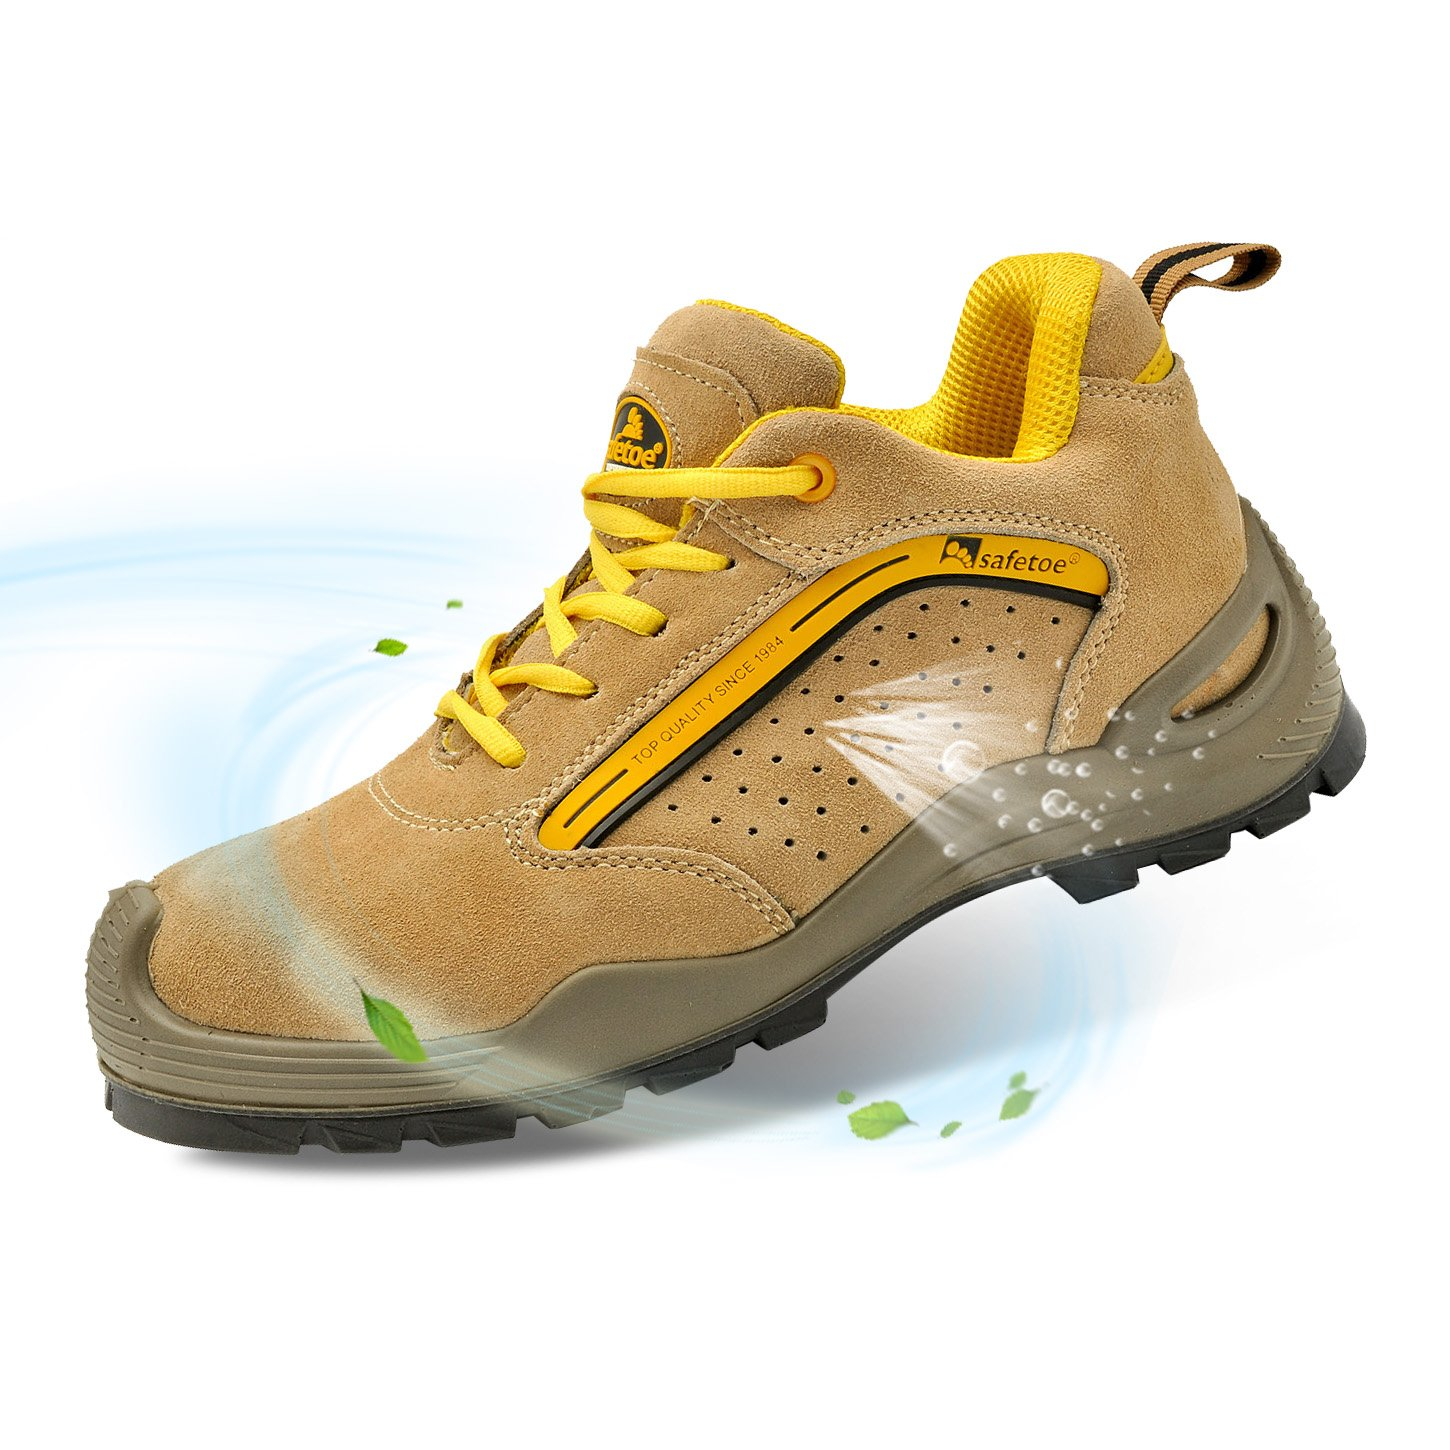 SAFETOE Mens Safety Work Shoes - L7296 Leather & Steel Toe Work Boots Heavy Duty Work Wide Fit